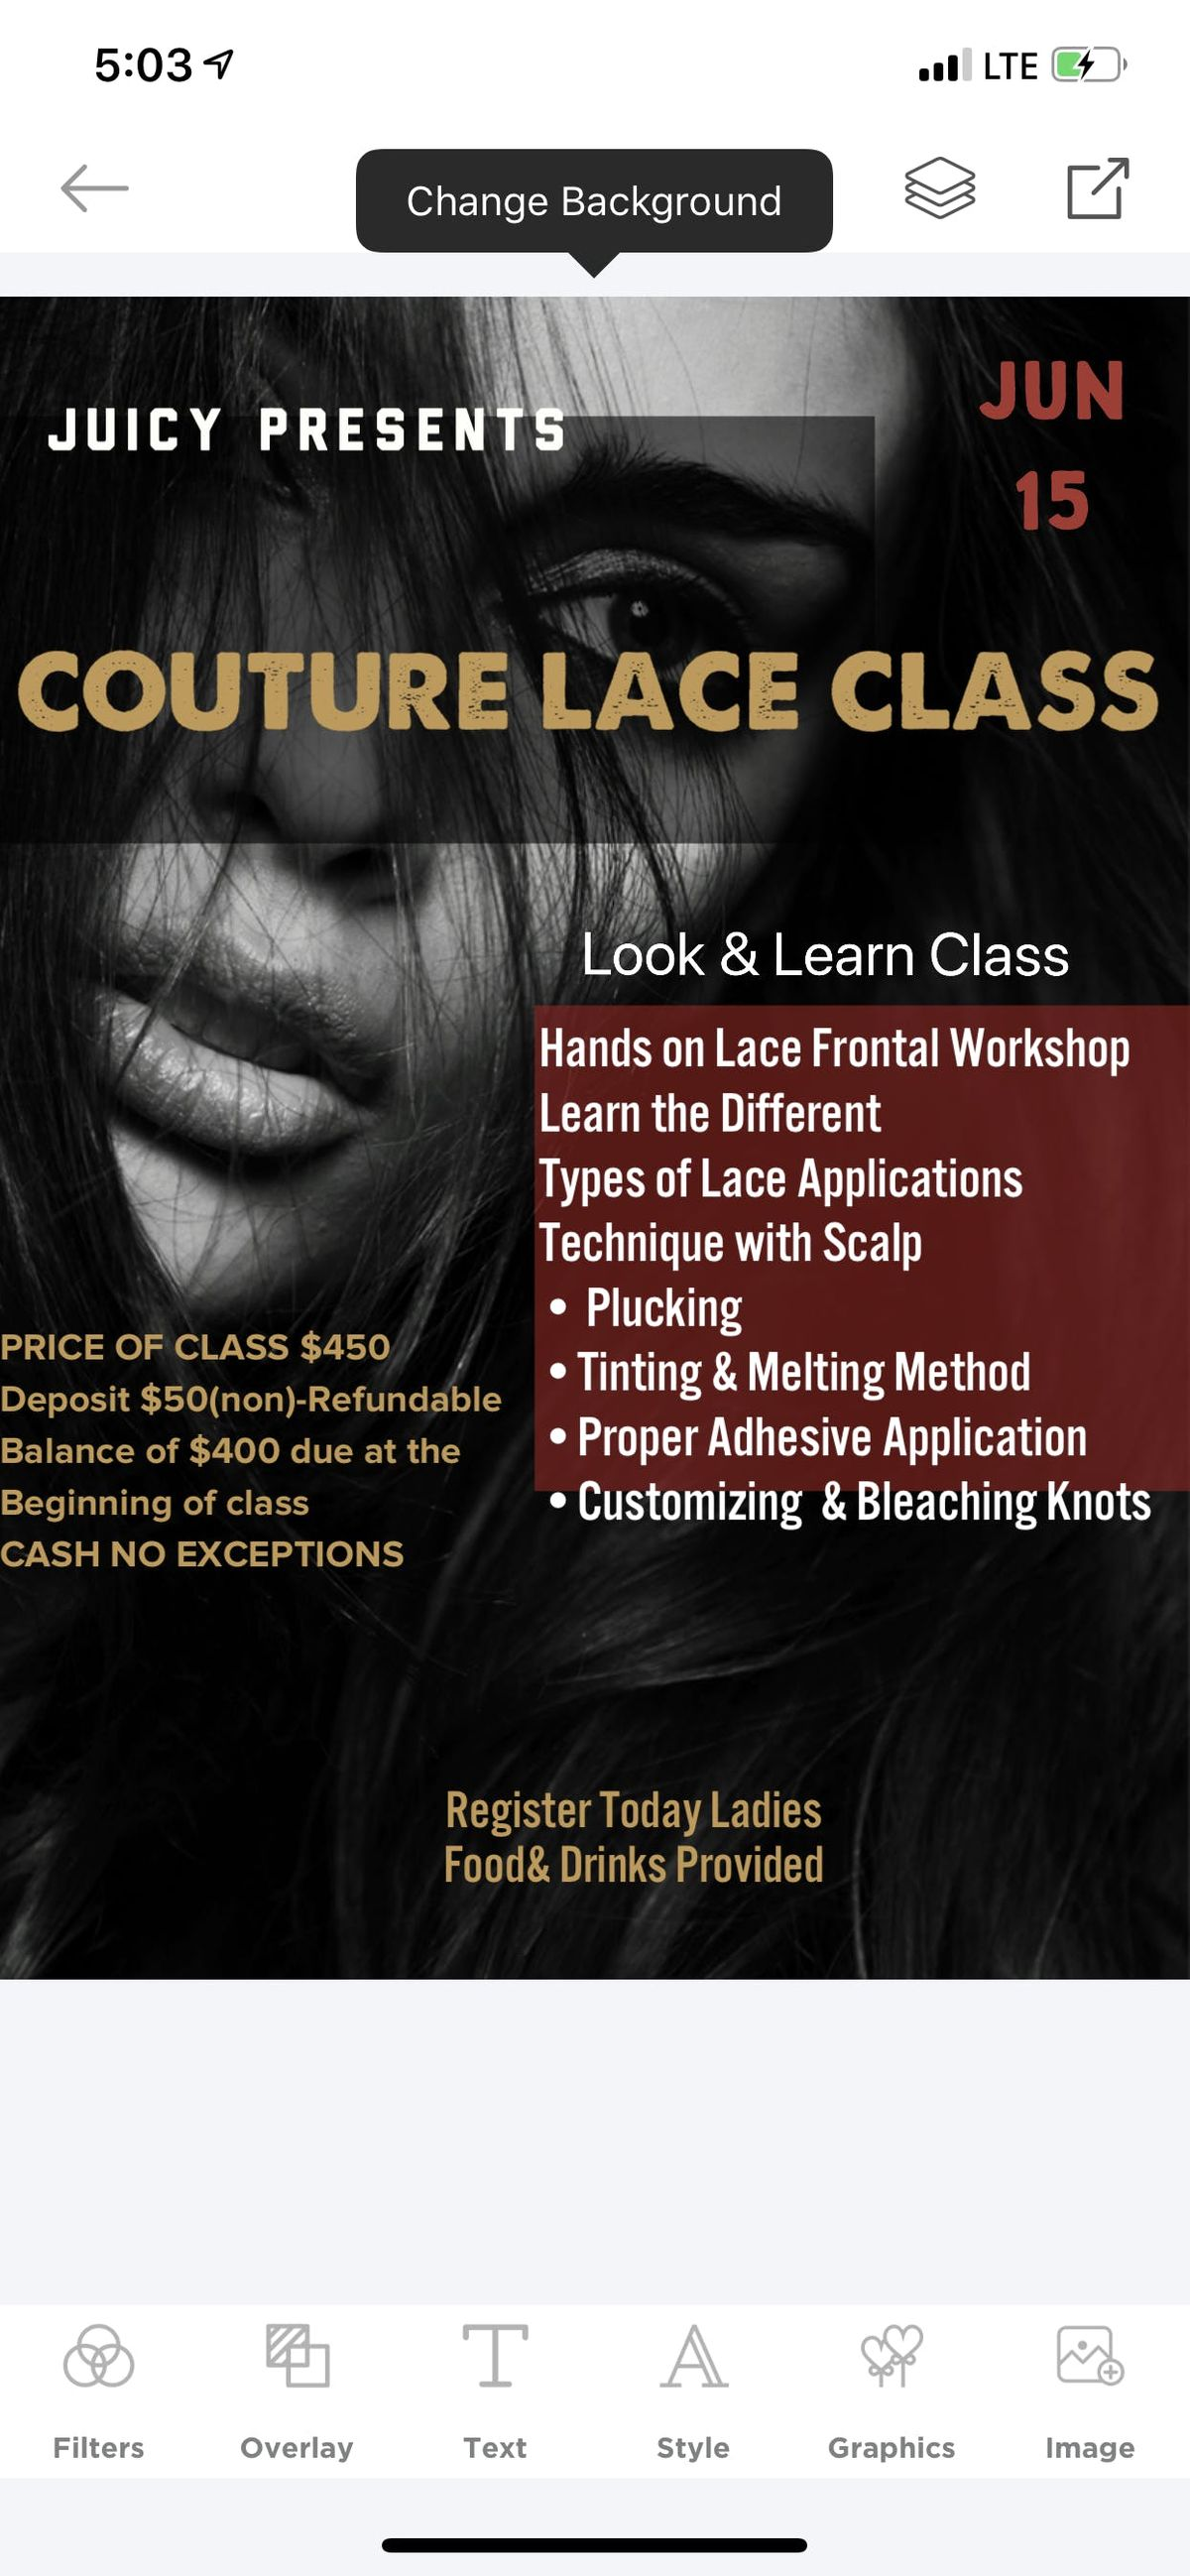 Couture Lace Class